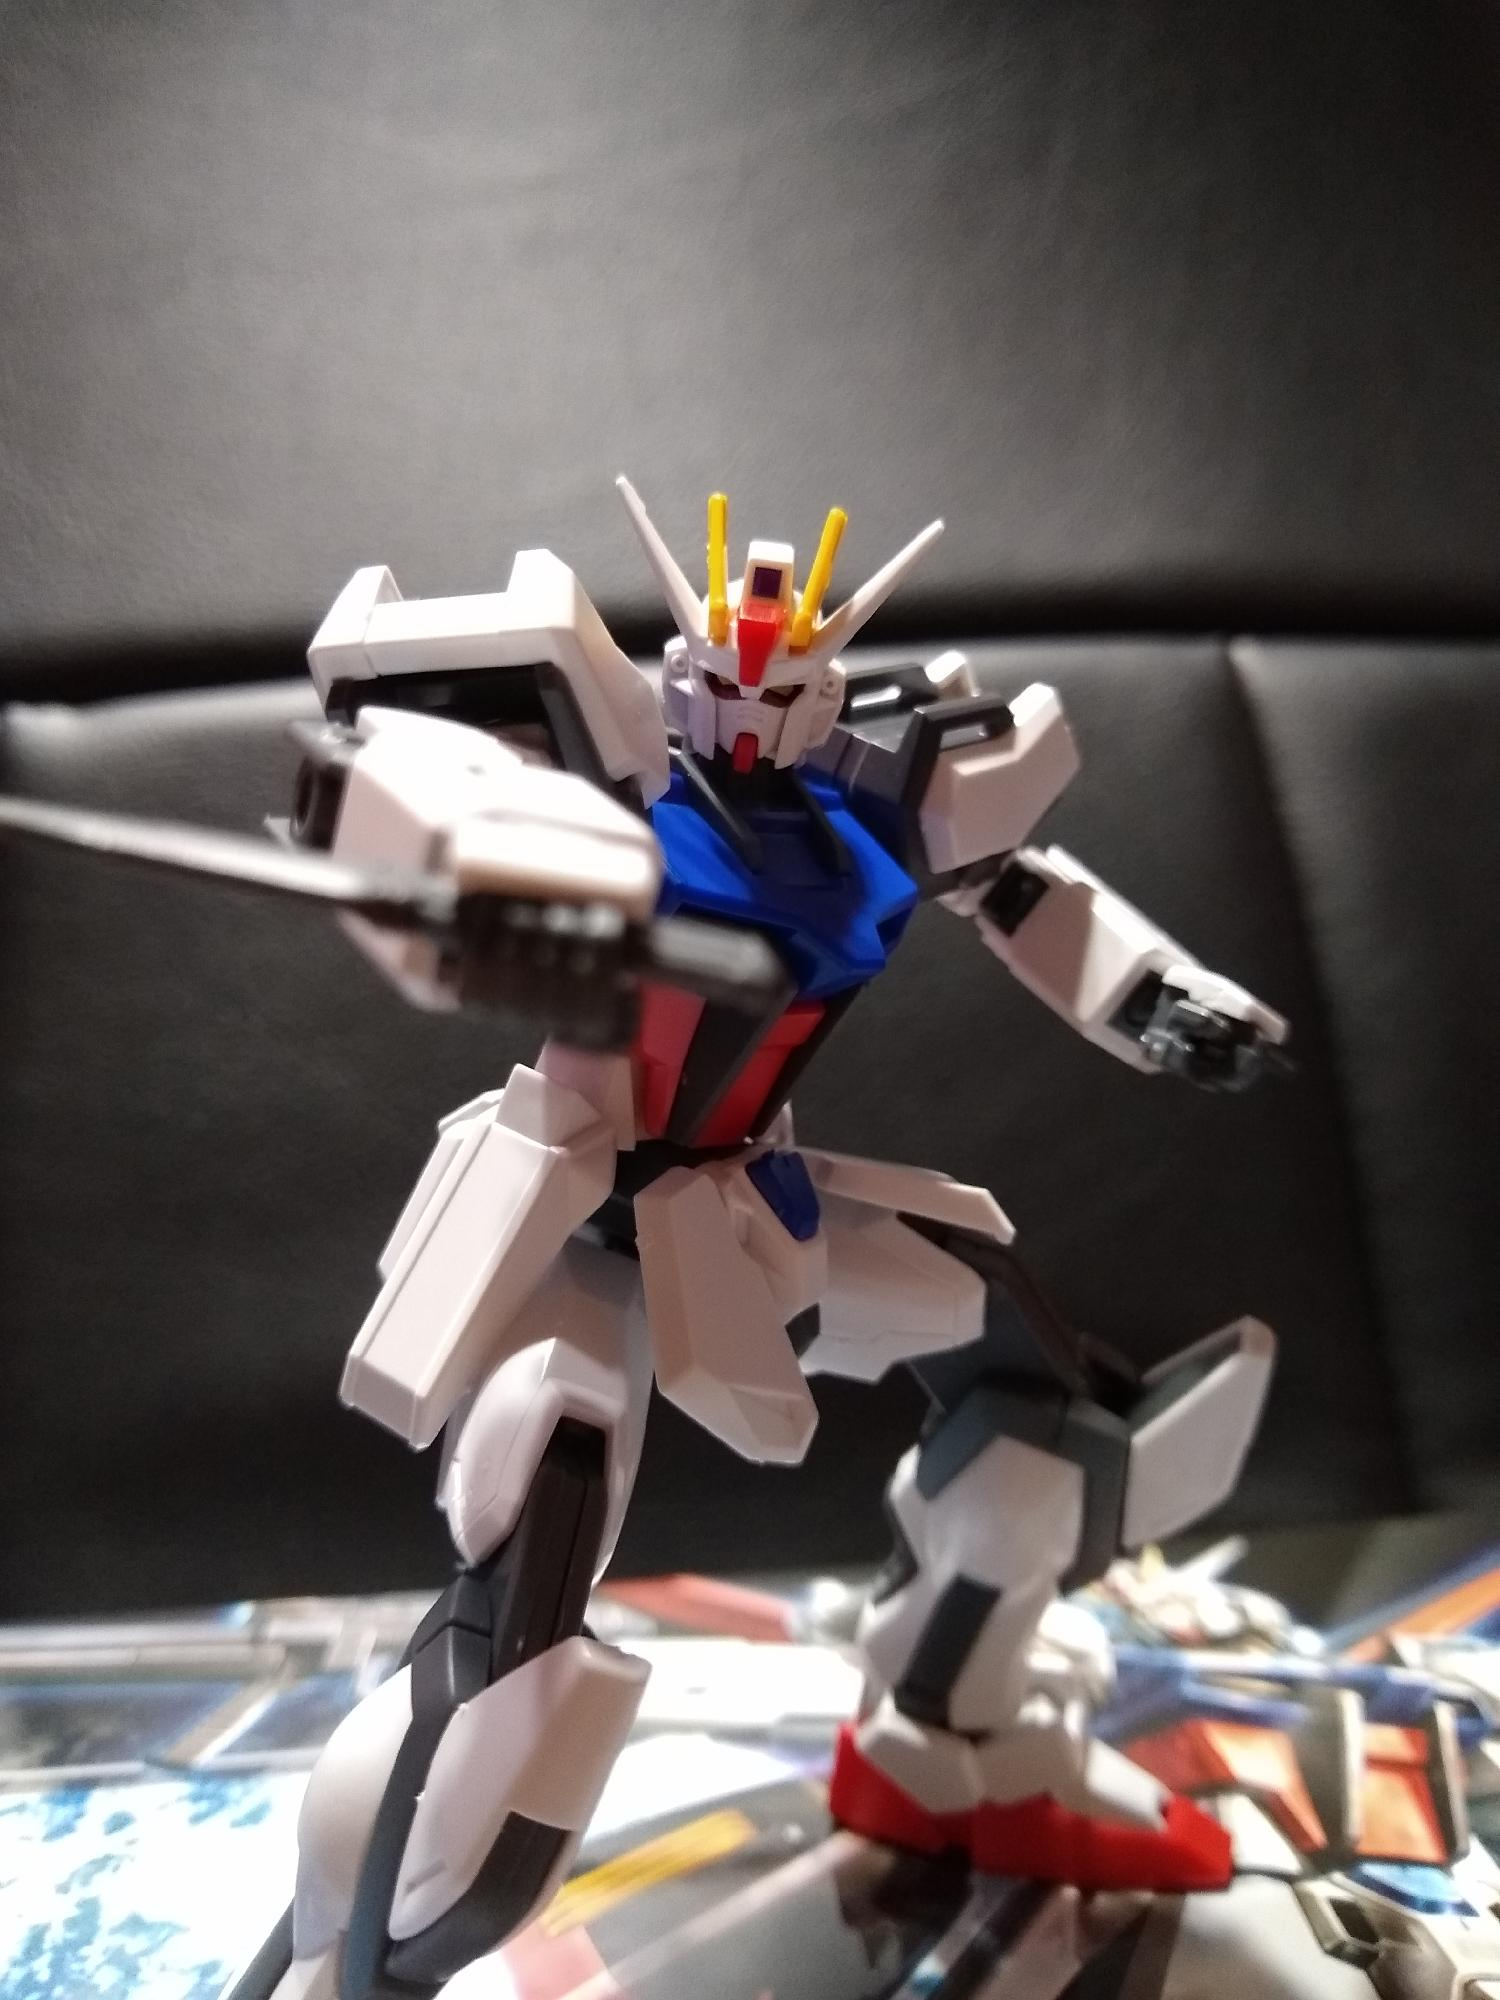 Just finished the HGCE aile strike gundam